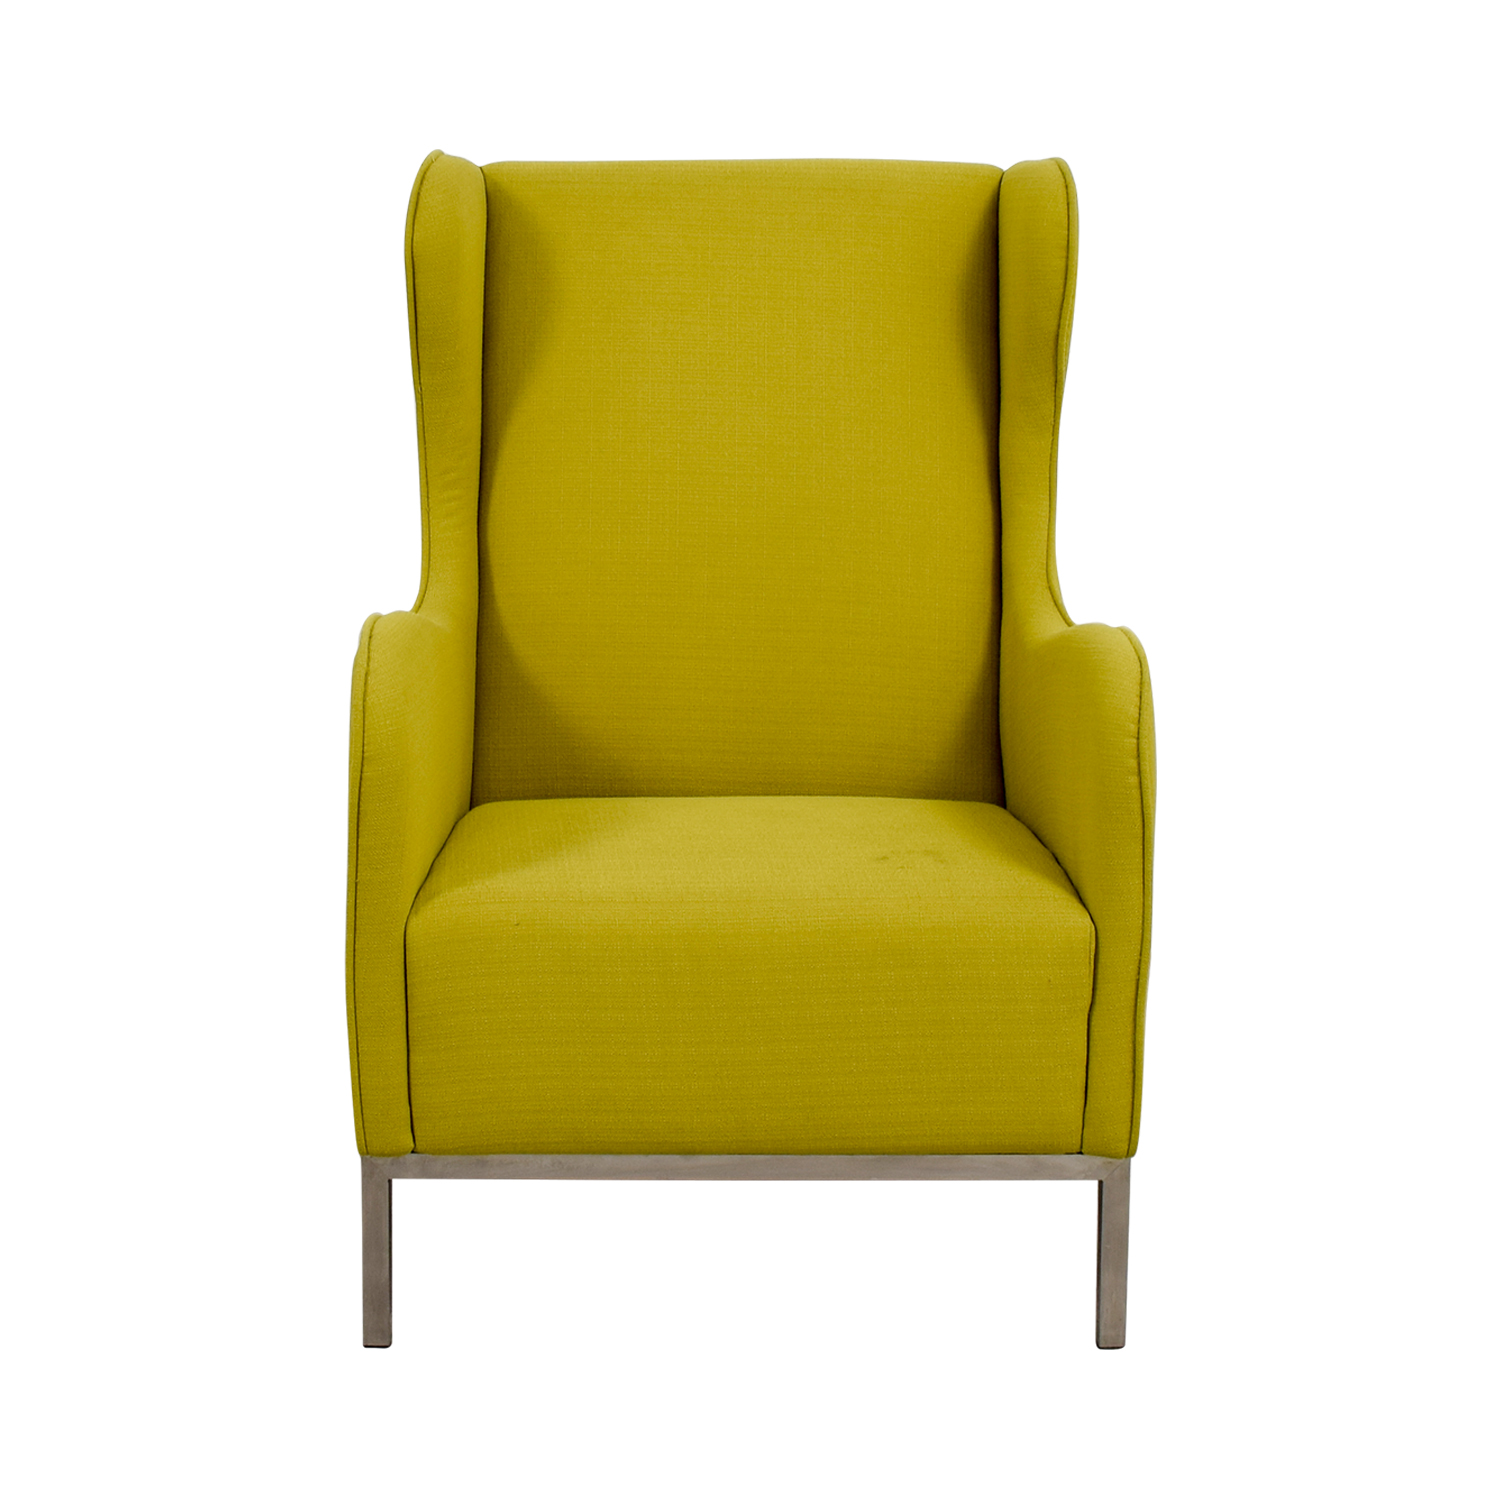 Crate and Barrel Crate and Barrel Neon Green Accent Chair Chairs